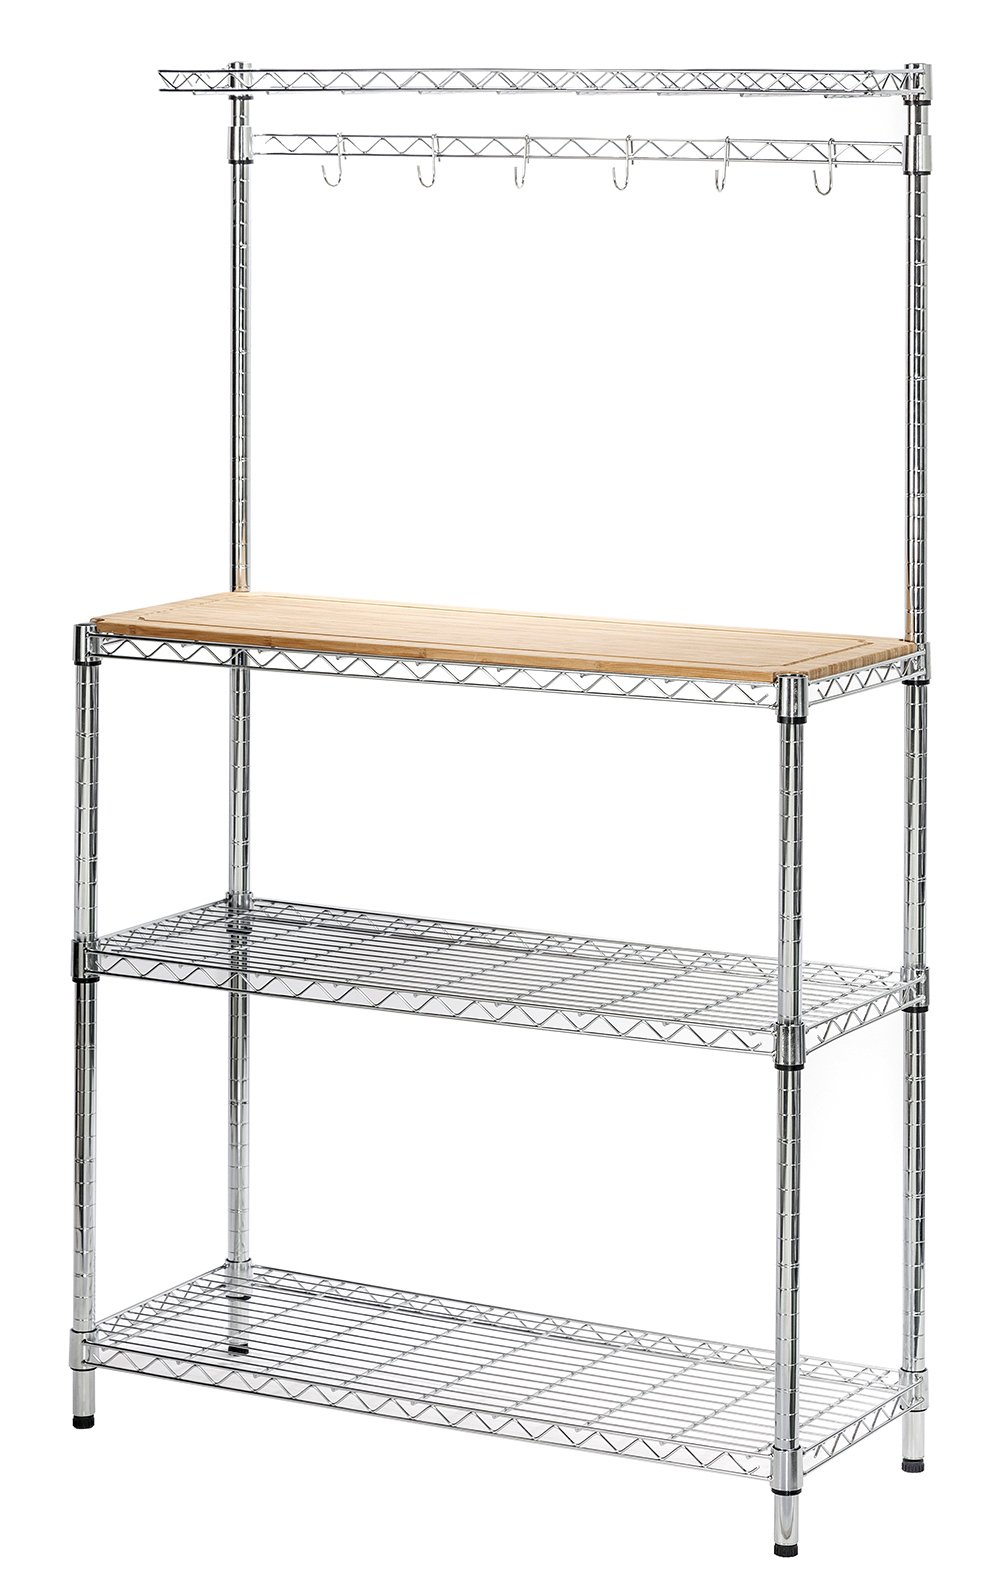 STORAGE MANIAC 4-Tier Adjustable Kitchen Bakers Rack, Kitchen Storage Shelving with Removable Wood Cutting Board, Chrome